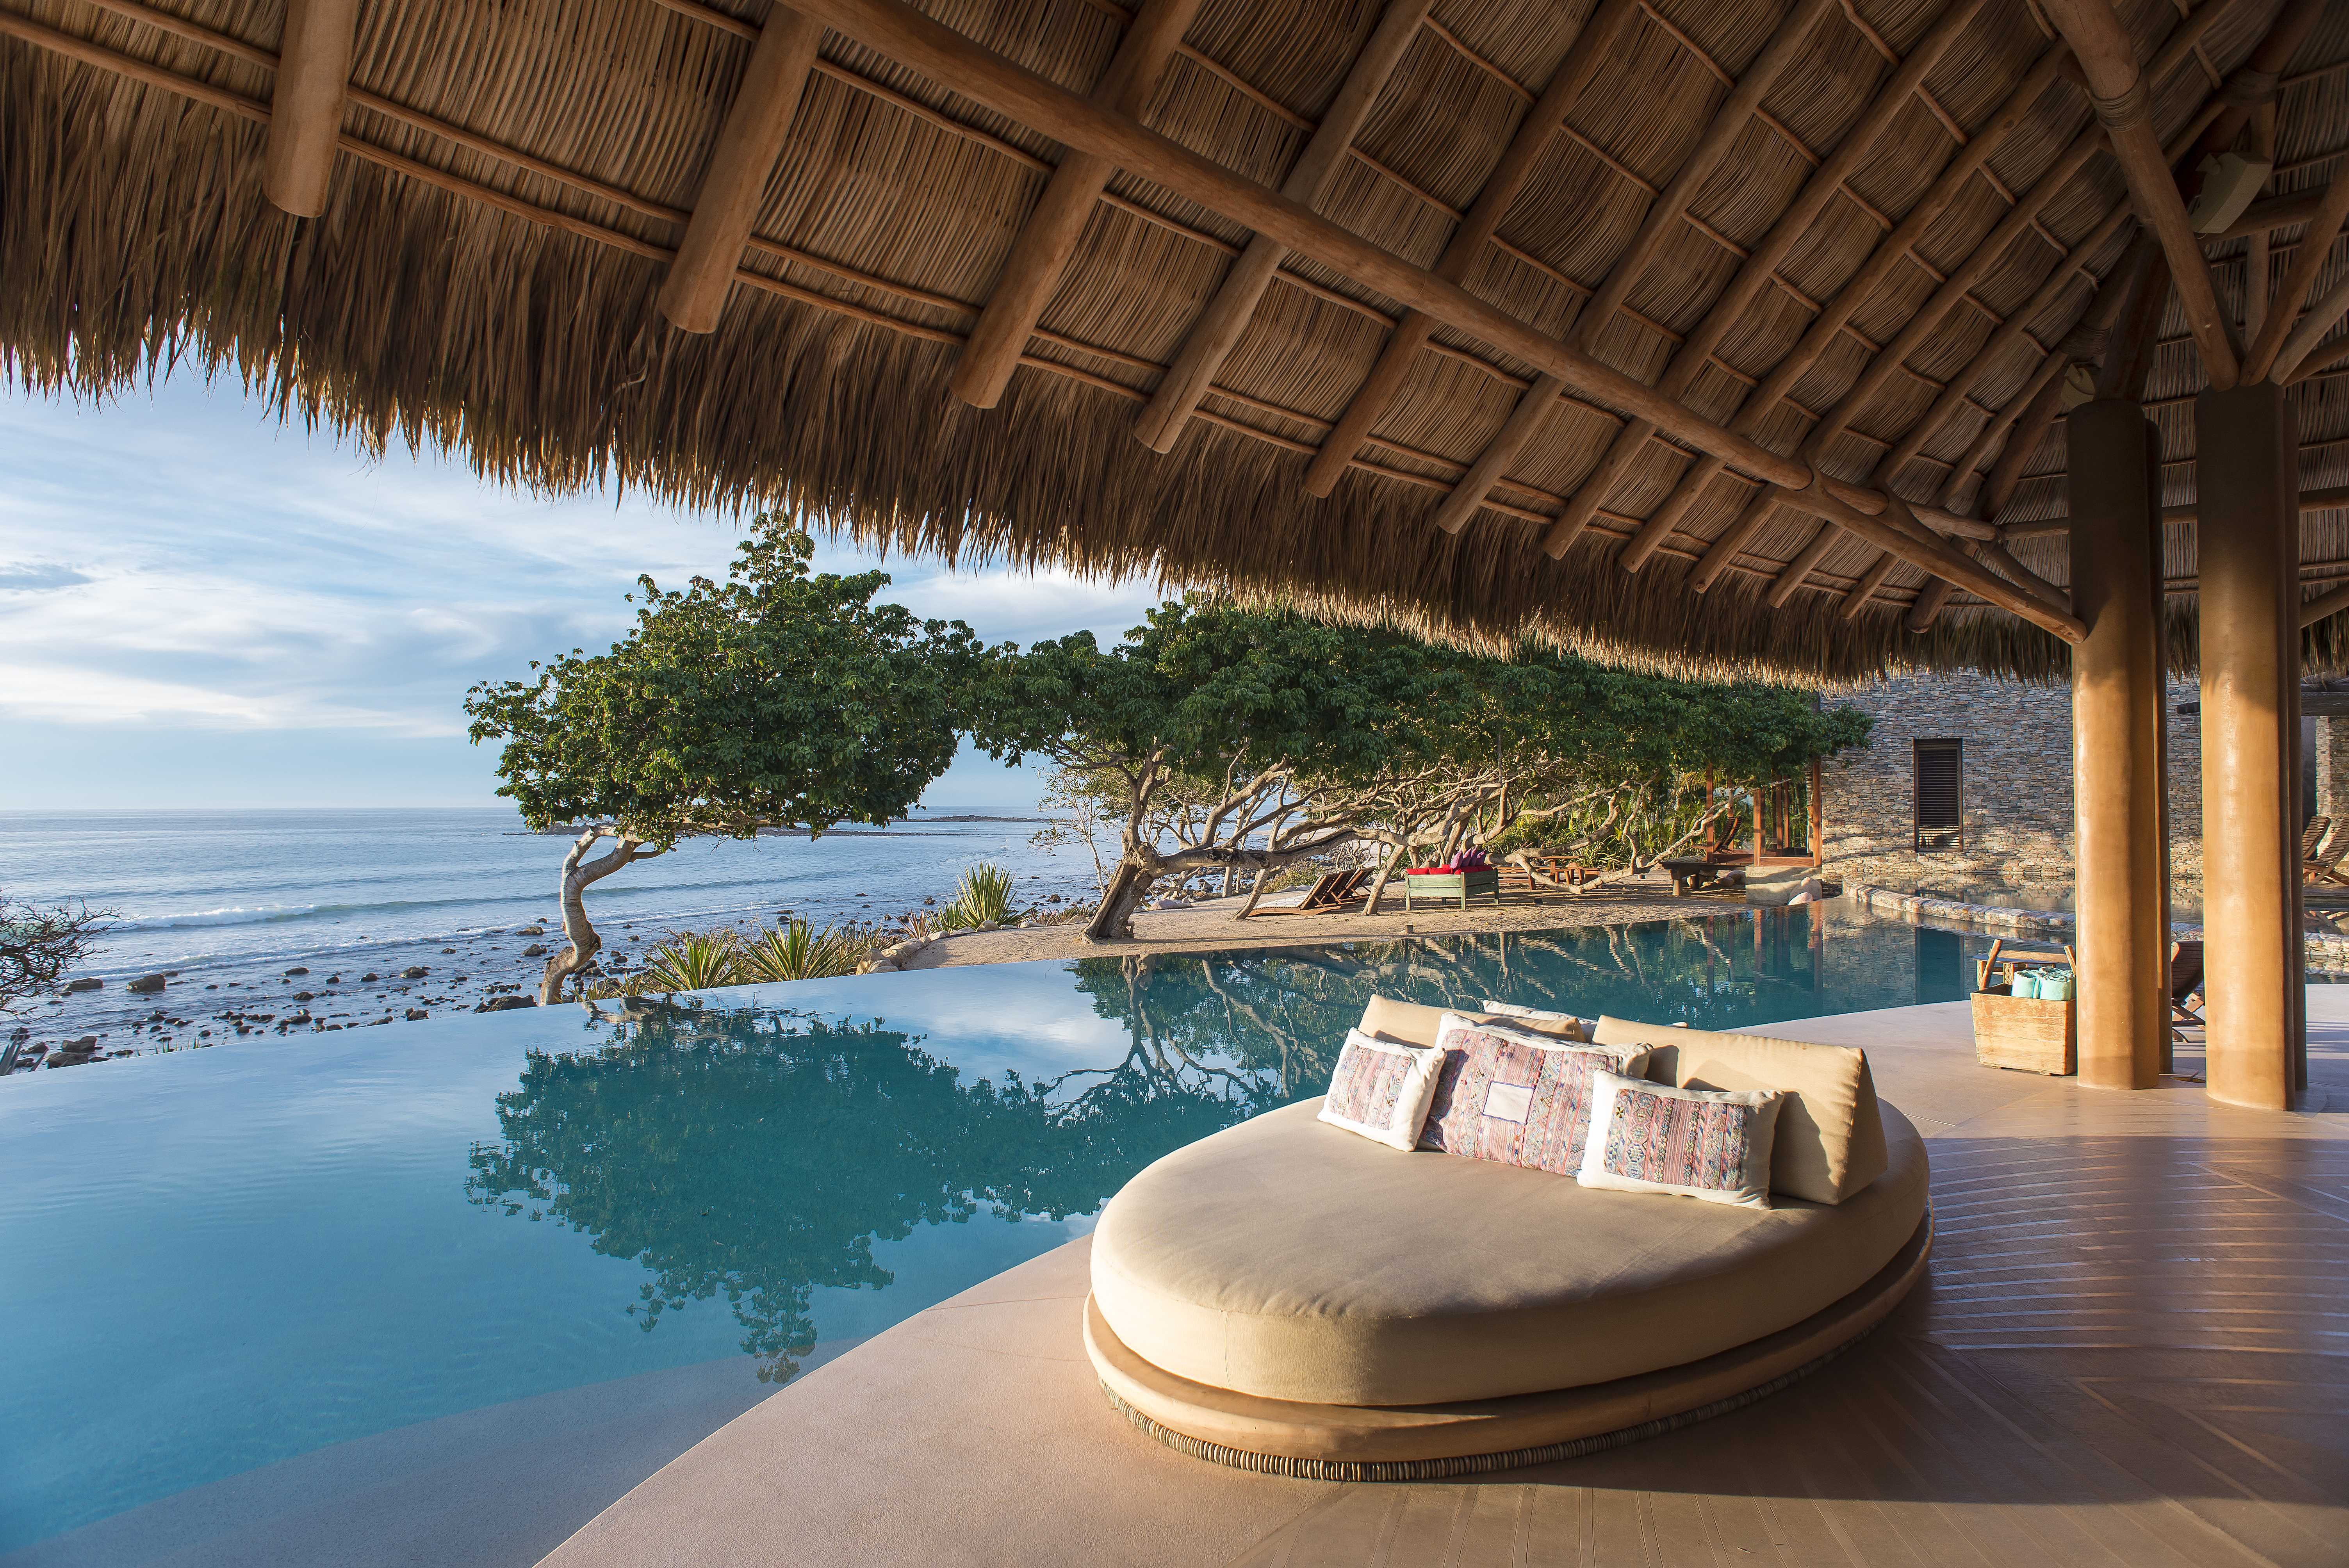 Pool_palapa_view1